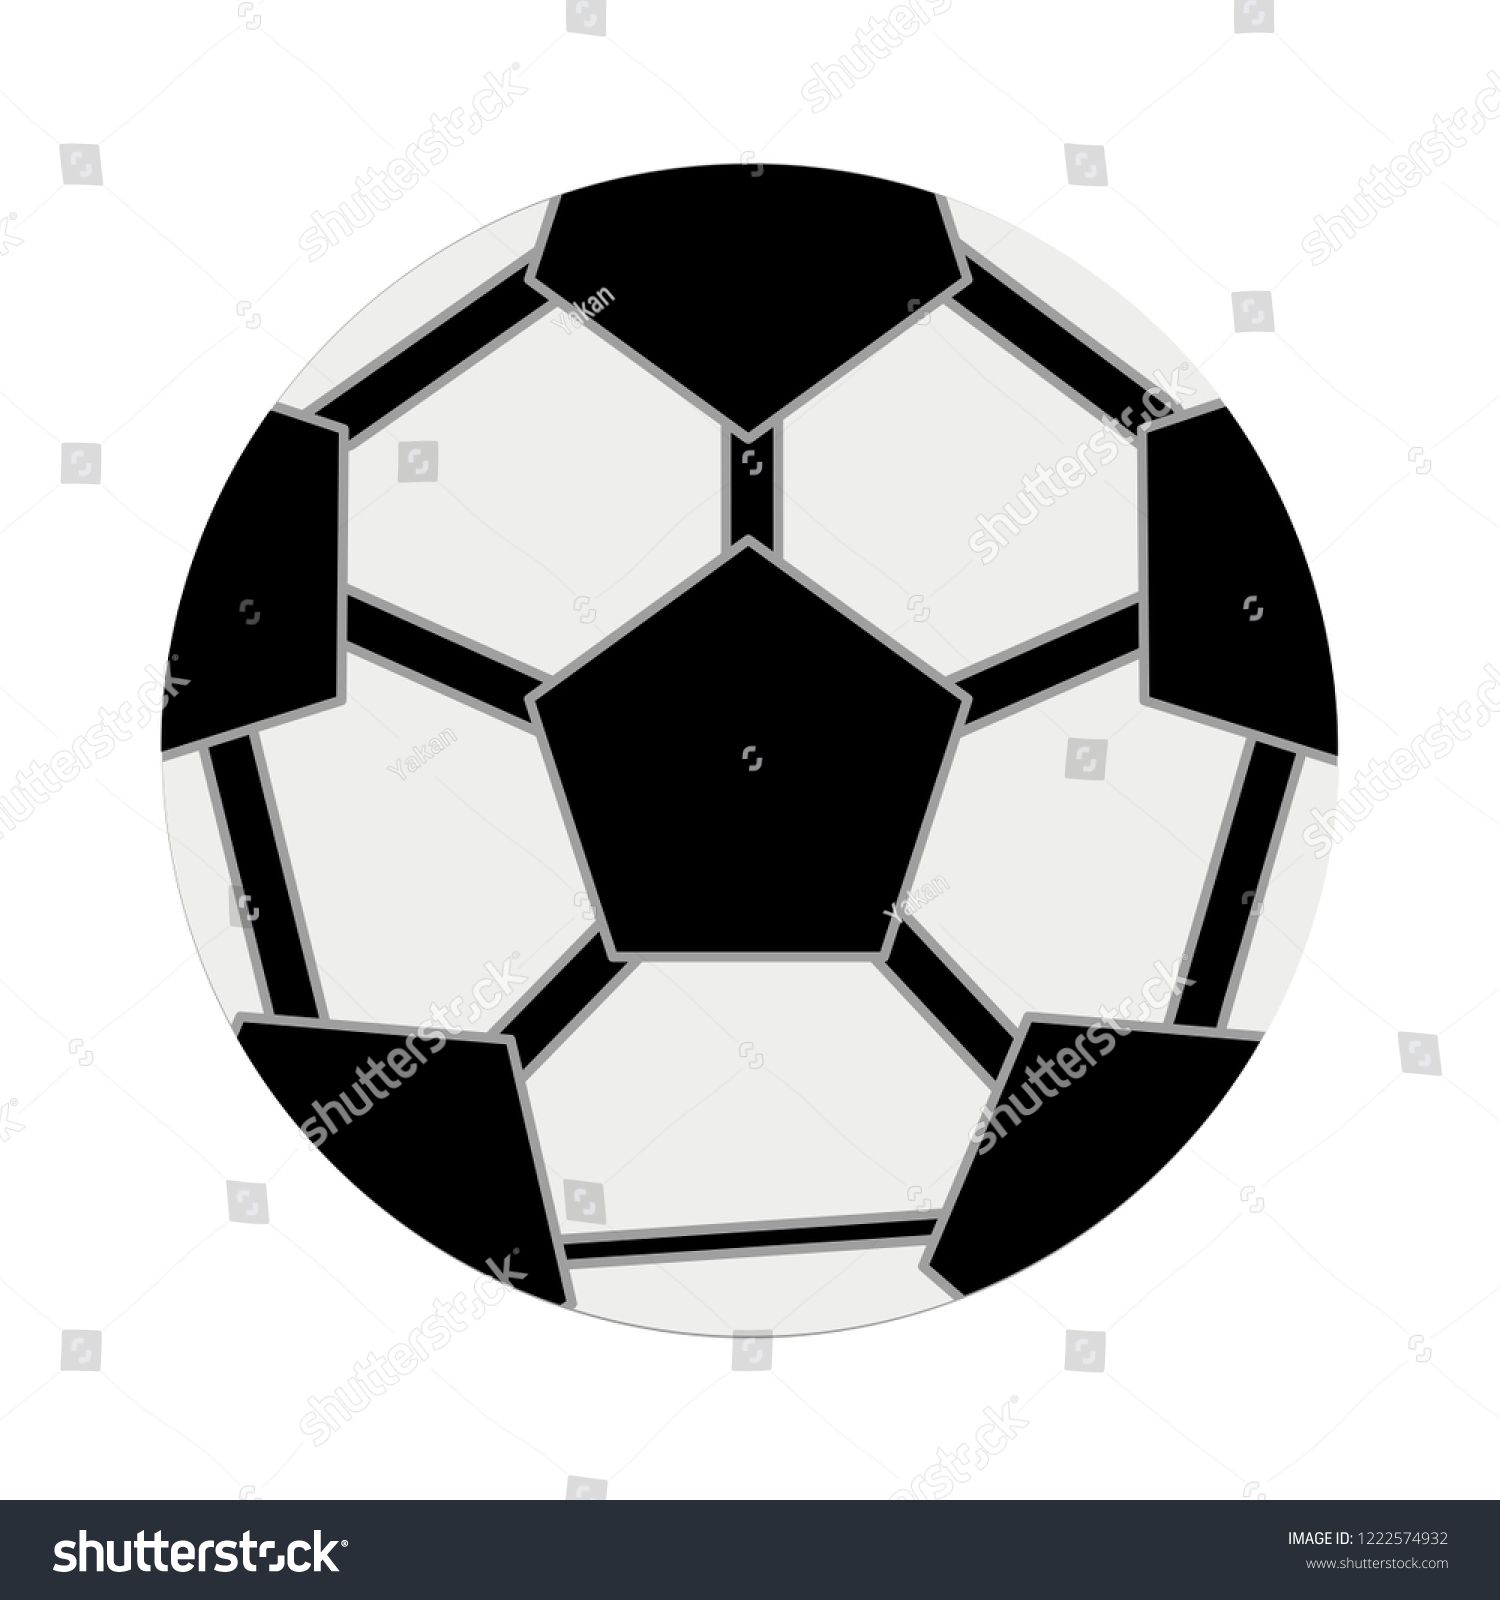 Soccer Sport Ball Icon Play Football Illustration Sports Sign Symbol Vector Play Game Icon Play Football Soccer Sport Soccer Soccer Sports Balls